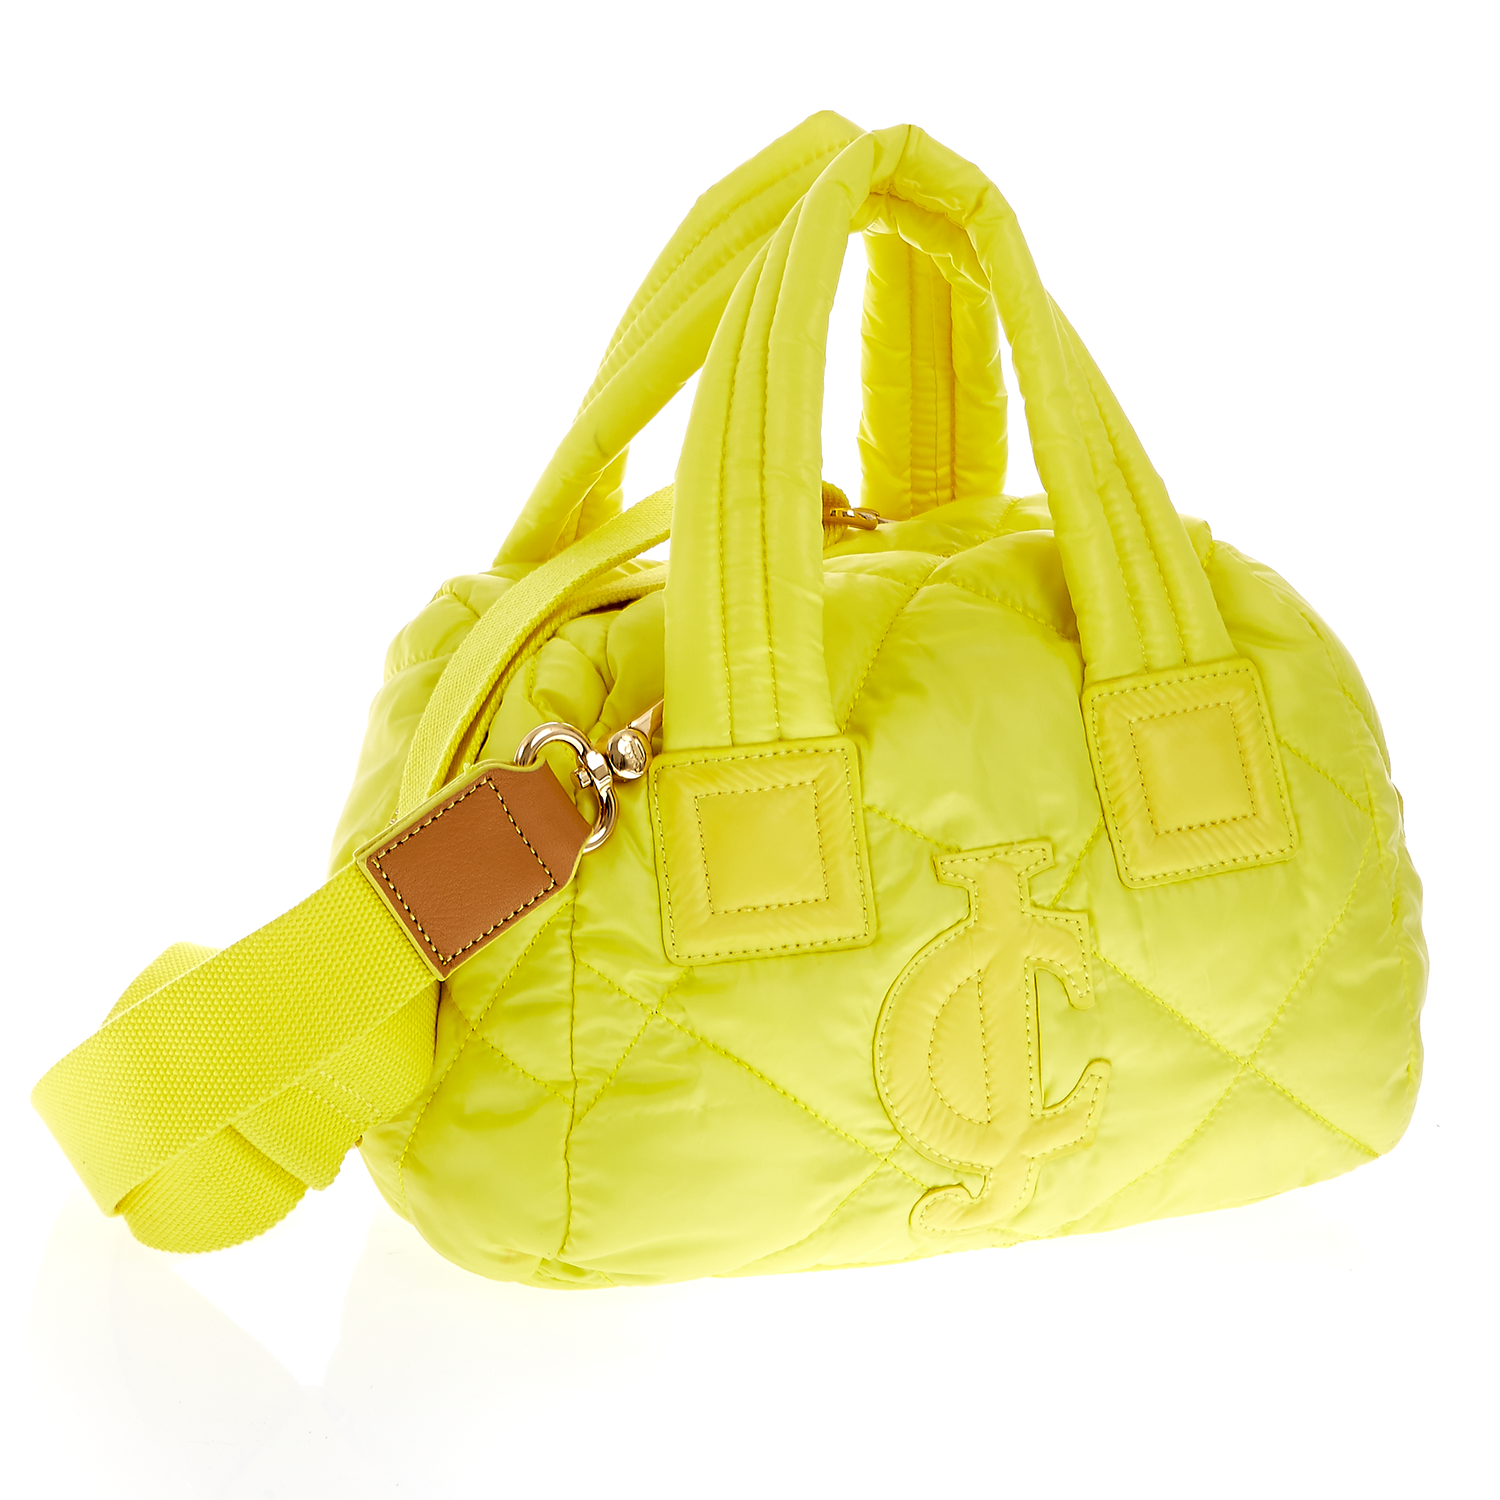 JUICY COUTURE – Γυναικεία τσάντα Juicy Couture κίτρινη 1379443.0-0053